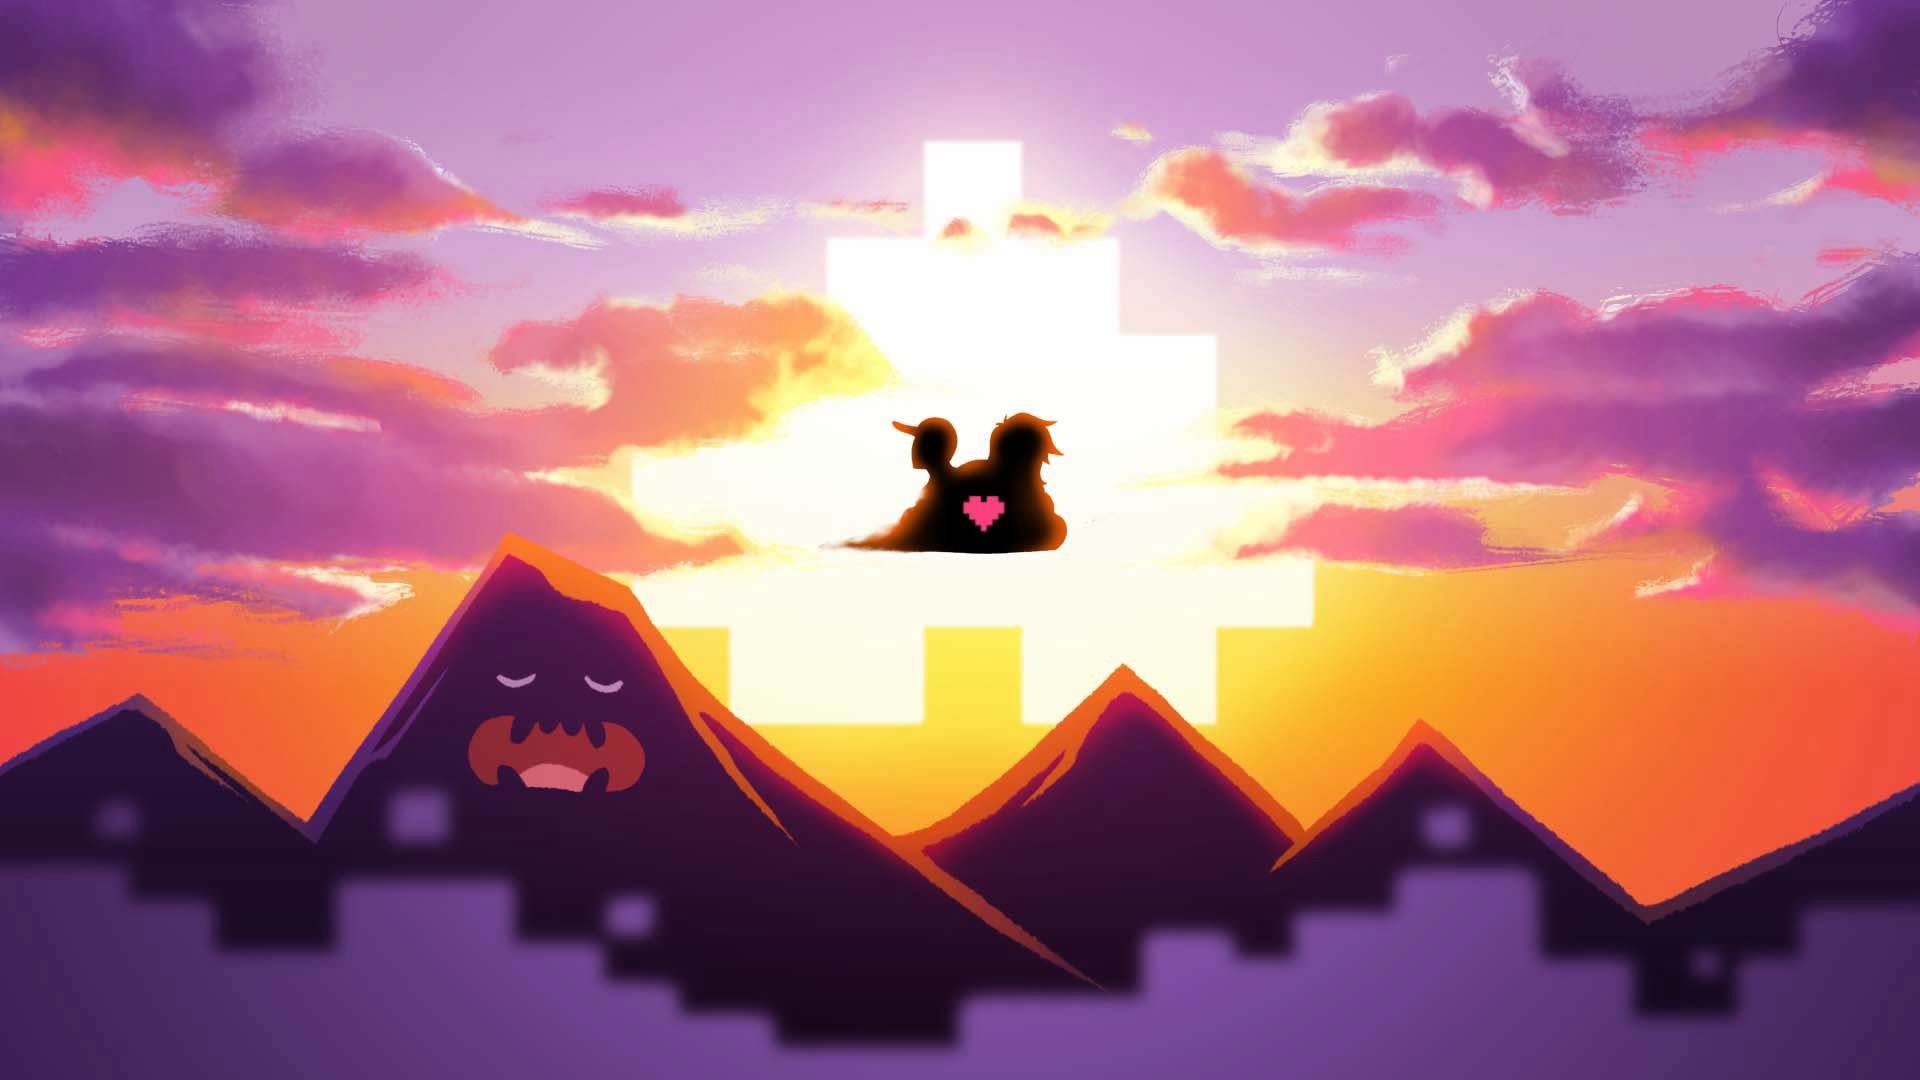 Res: 1920x1080, Pegboard Nerds - Downhearted Ft. Jonny Rose